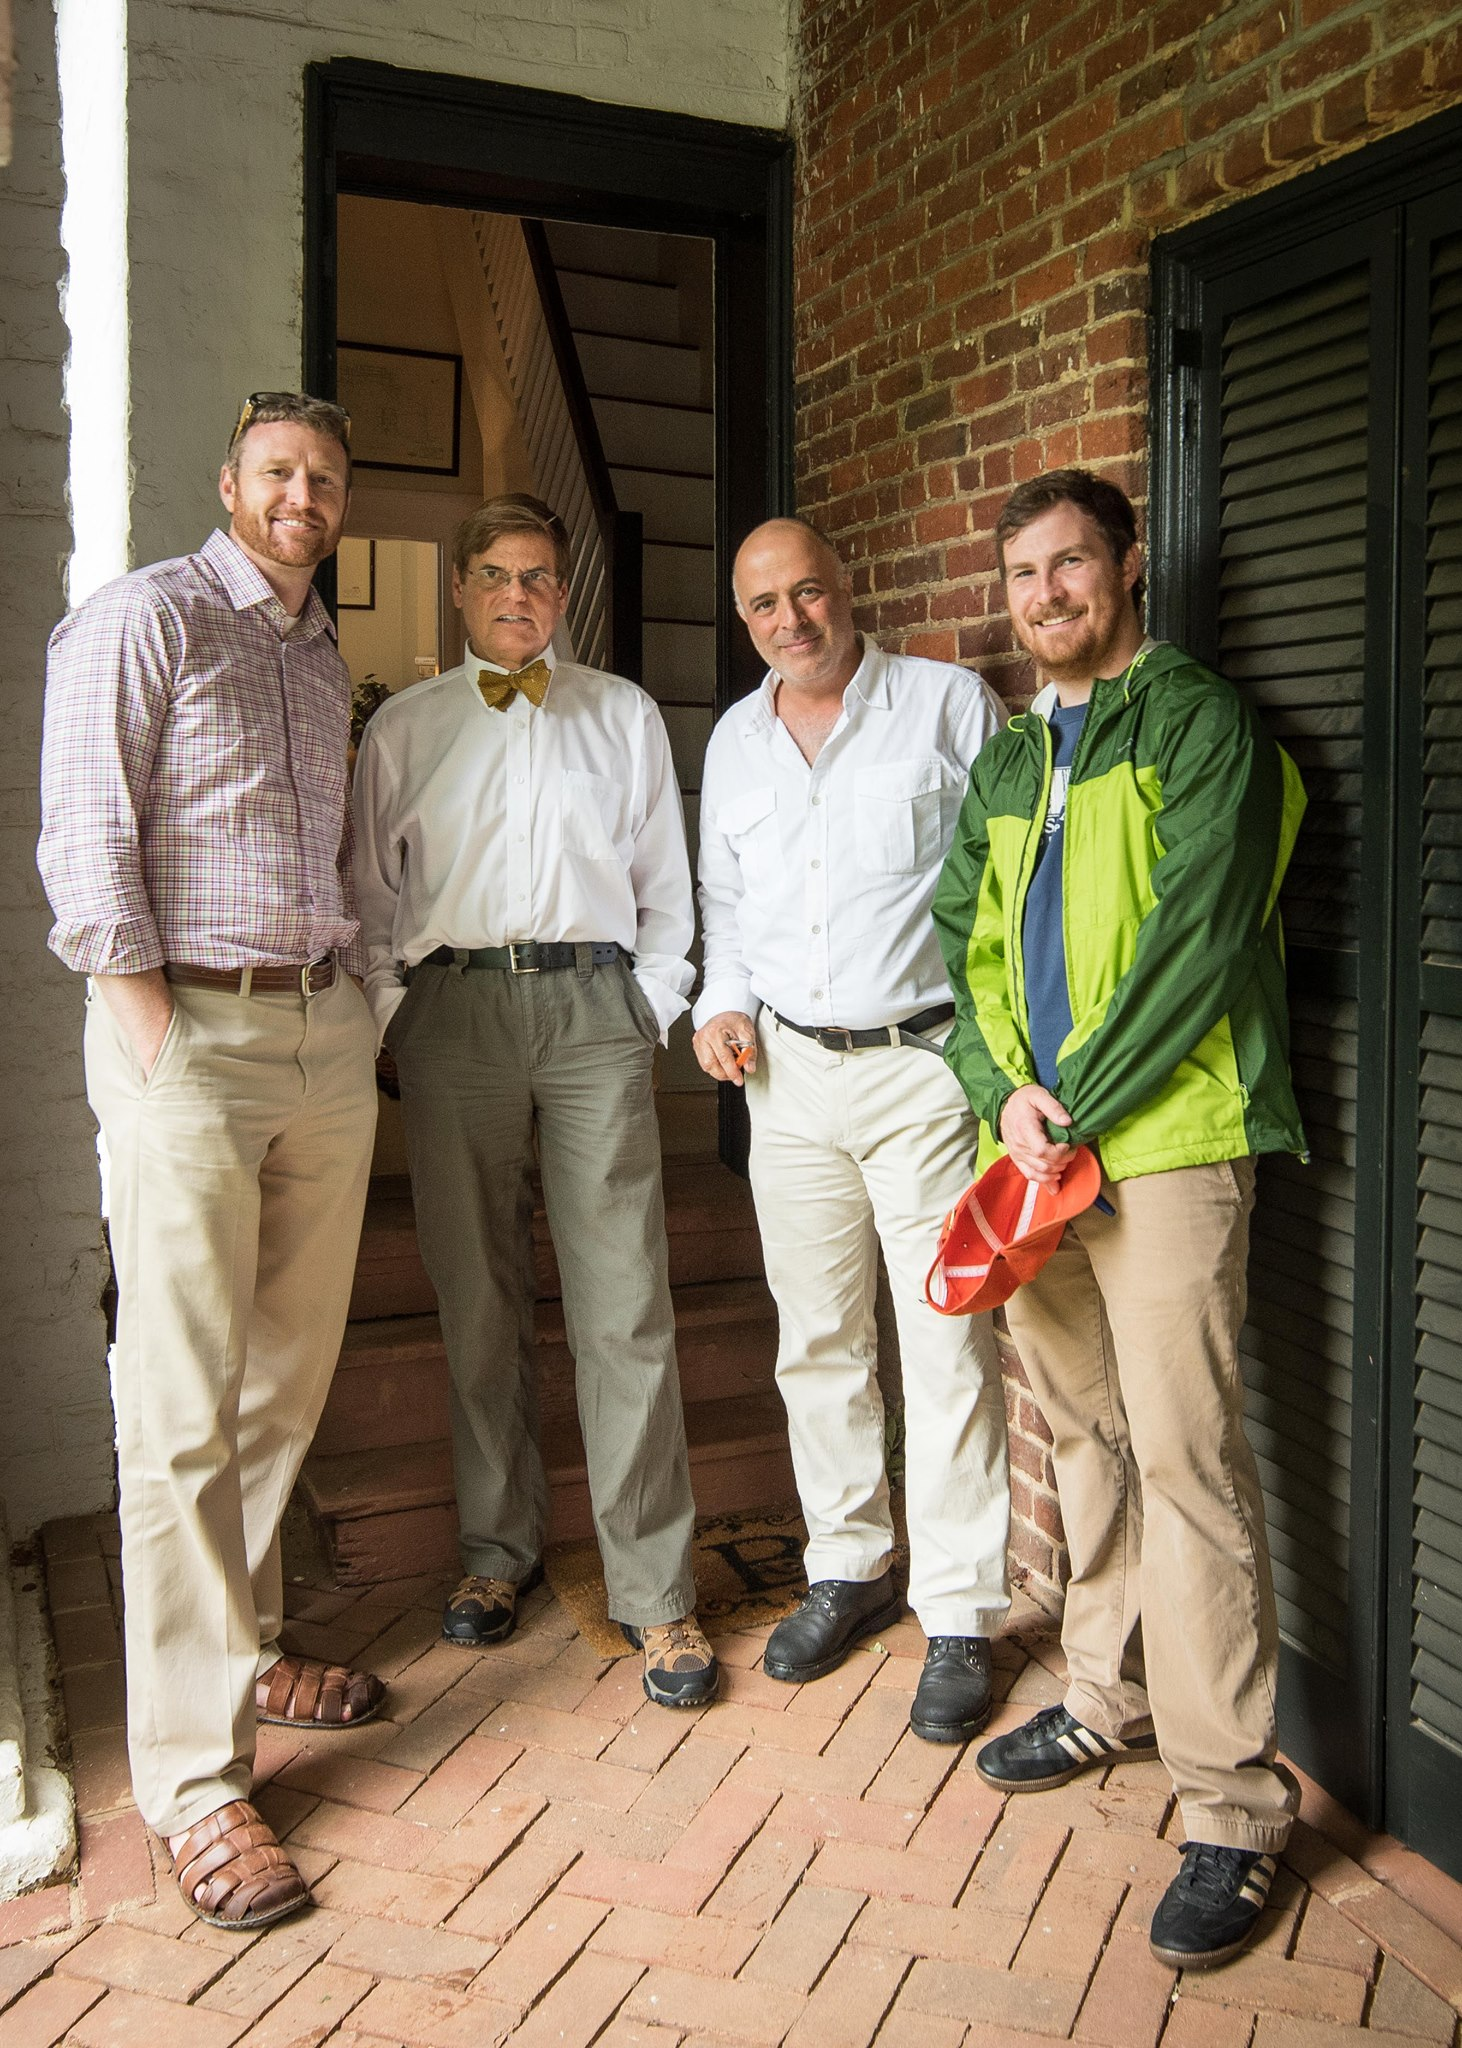 Director of Studies Stephen Plaskon, second from left, and Montes-Bradley, third from left, invited U.Va. Associate Professor of Architectural History Louis Nelson, left, and graduate assistant Kyle Edwards, right, to tour the small building.